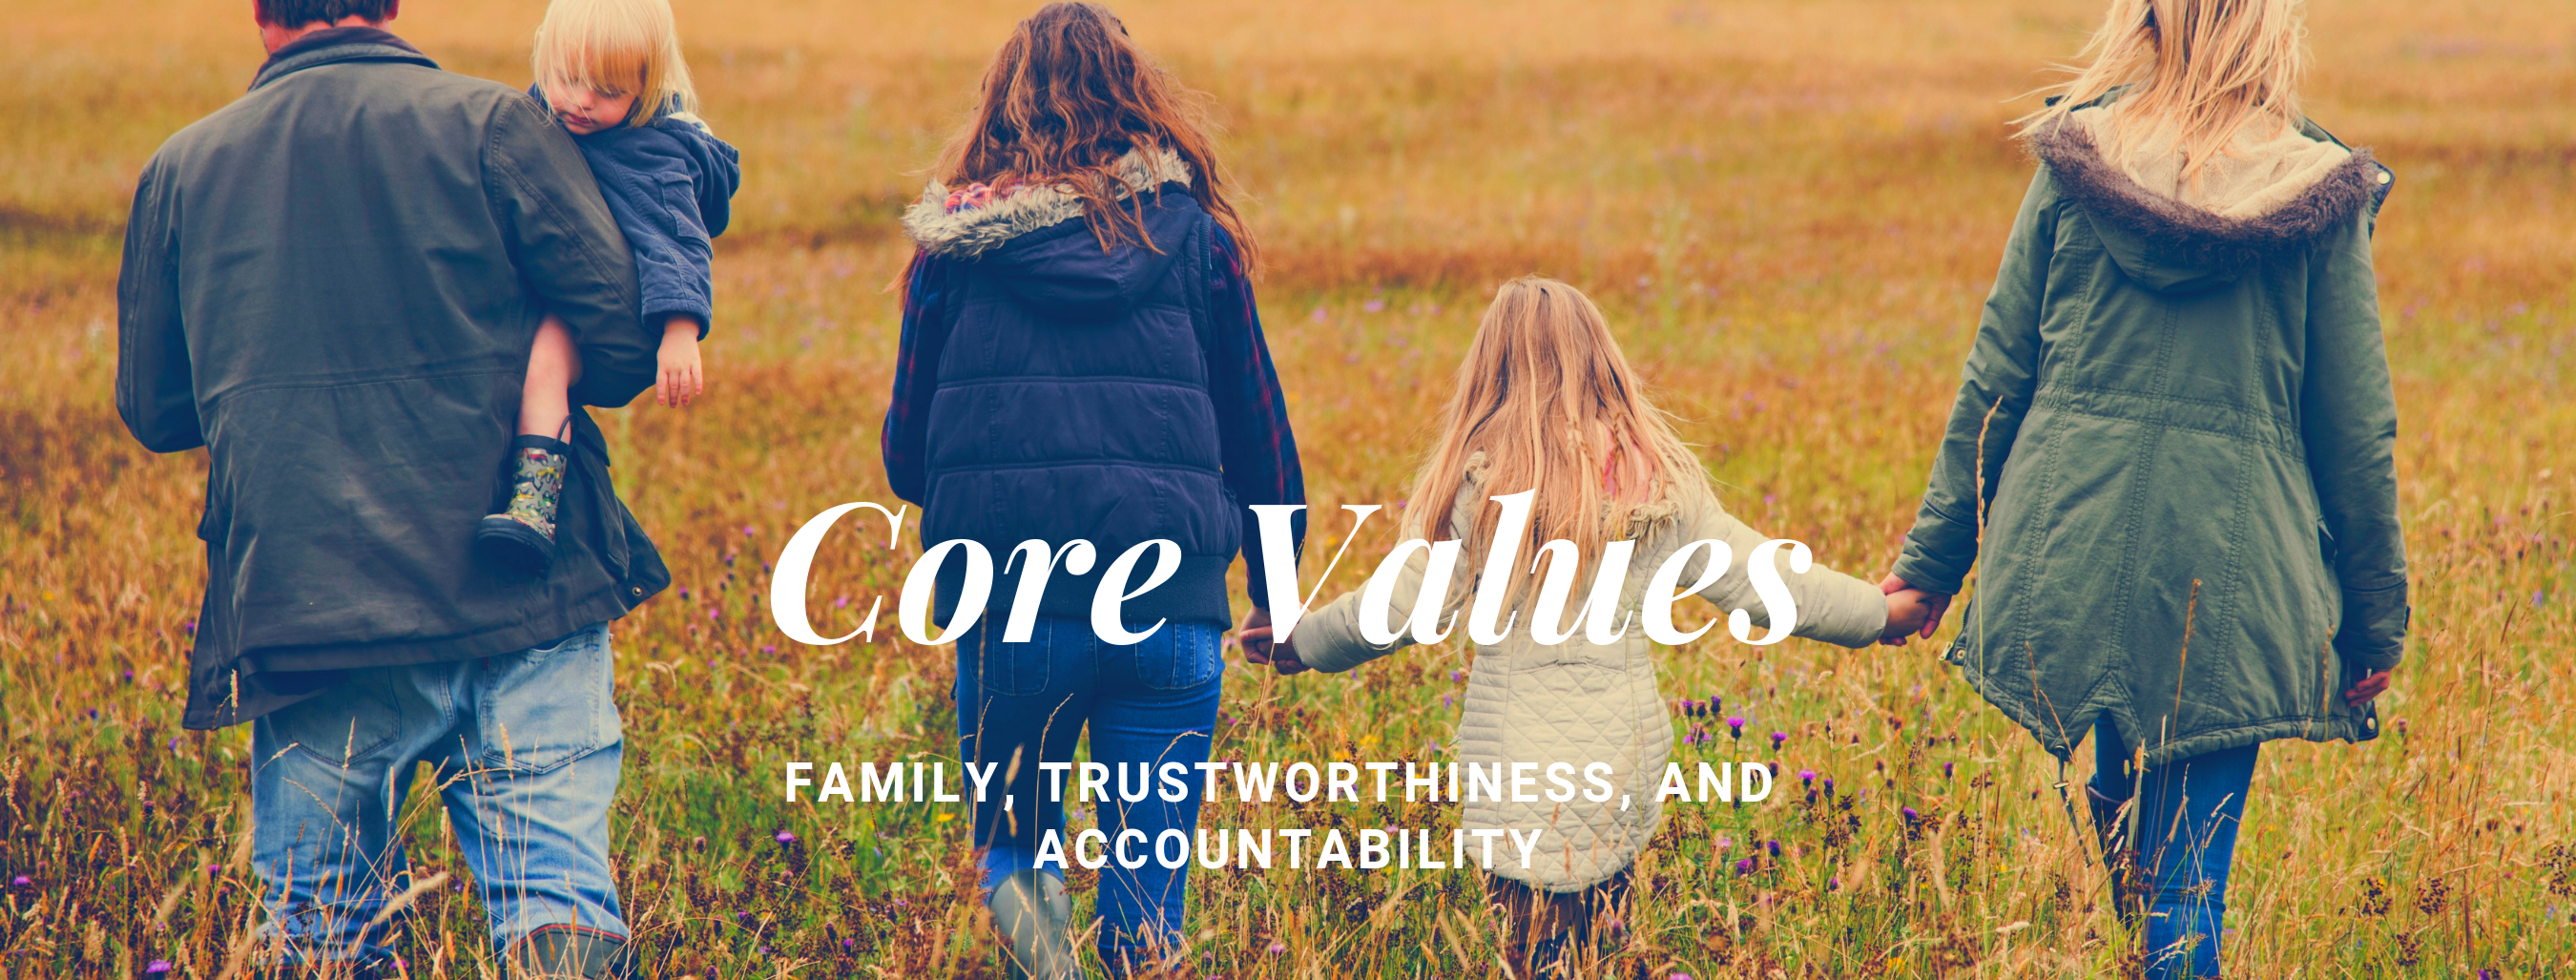 Core Values 2nd blog (2700x1027).png